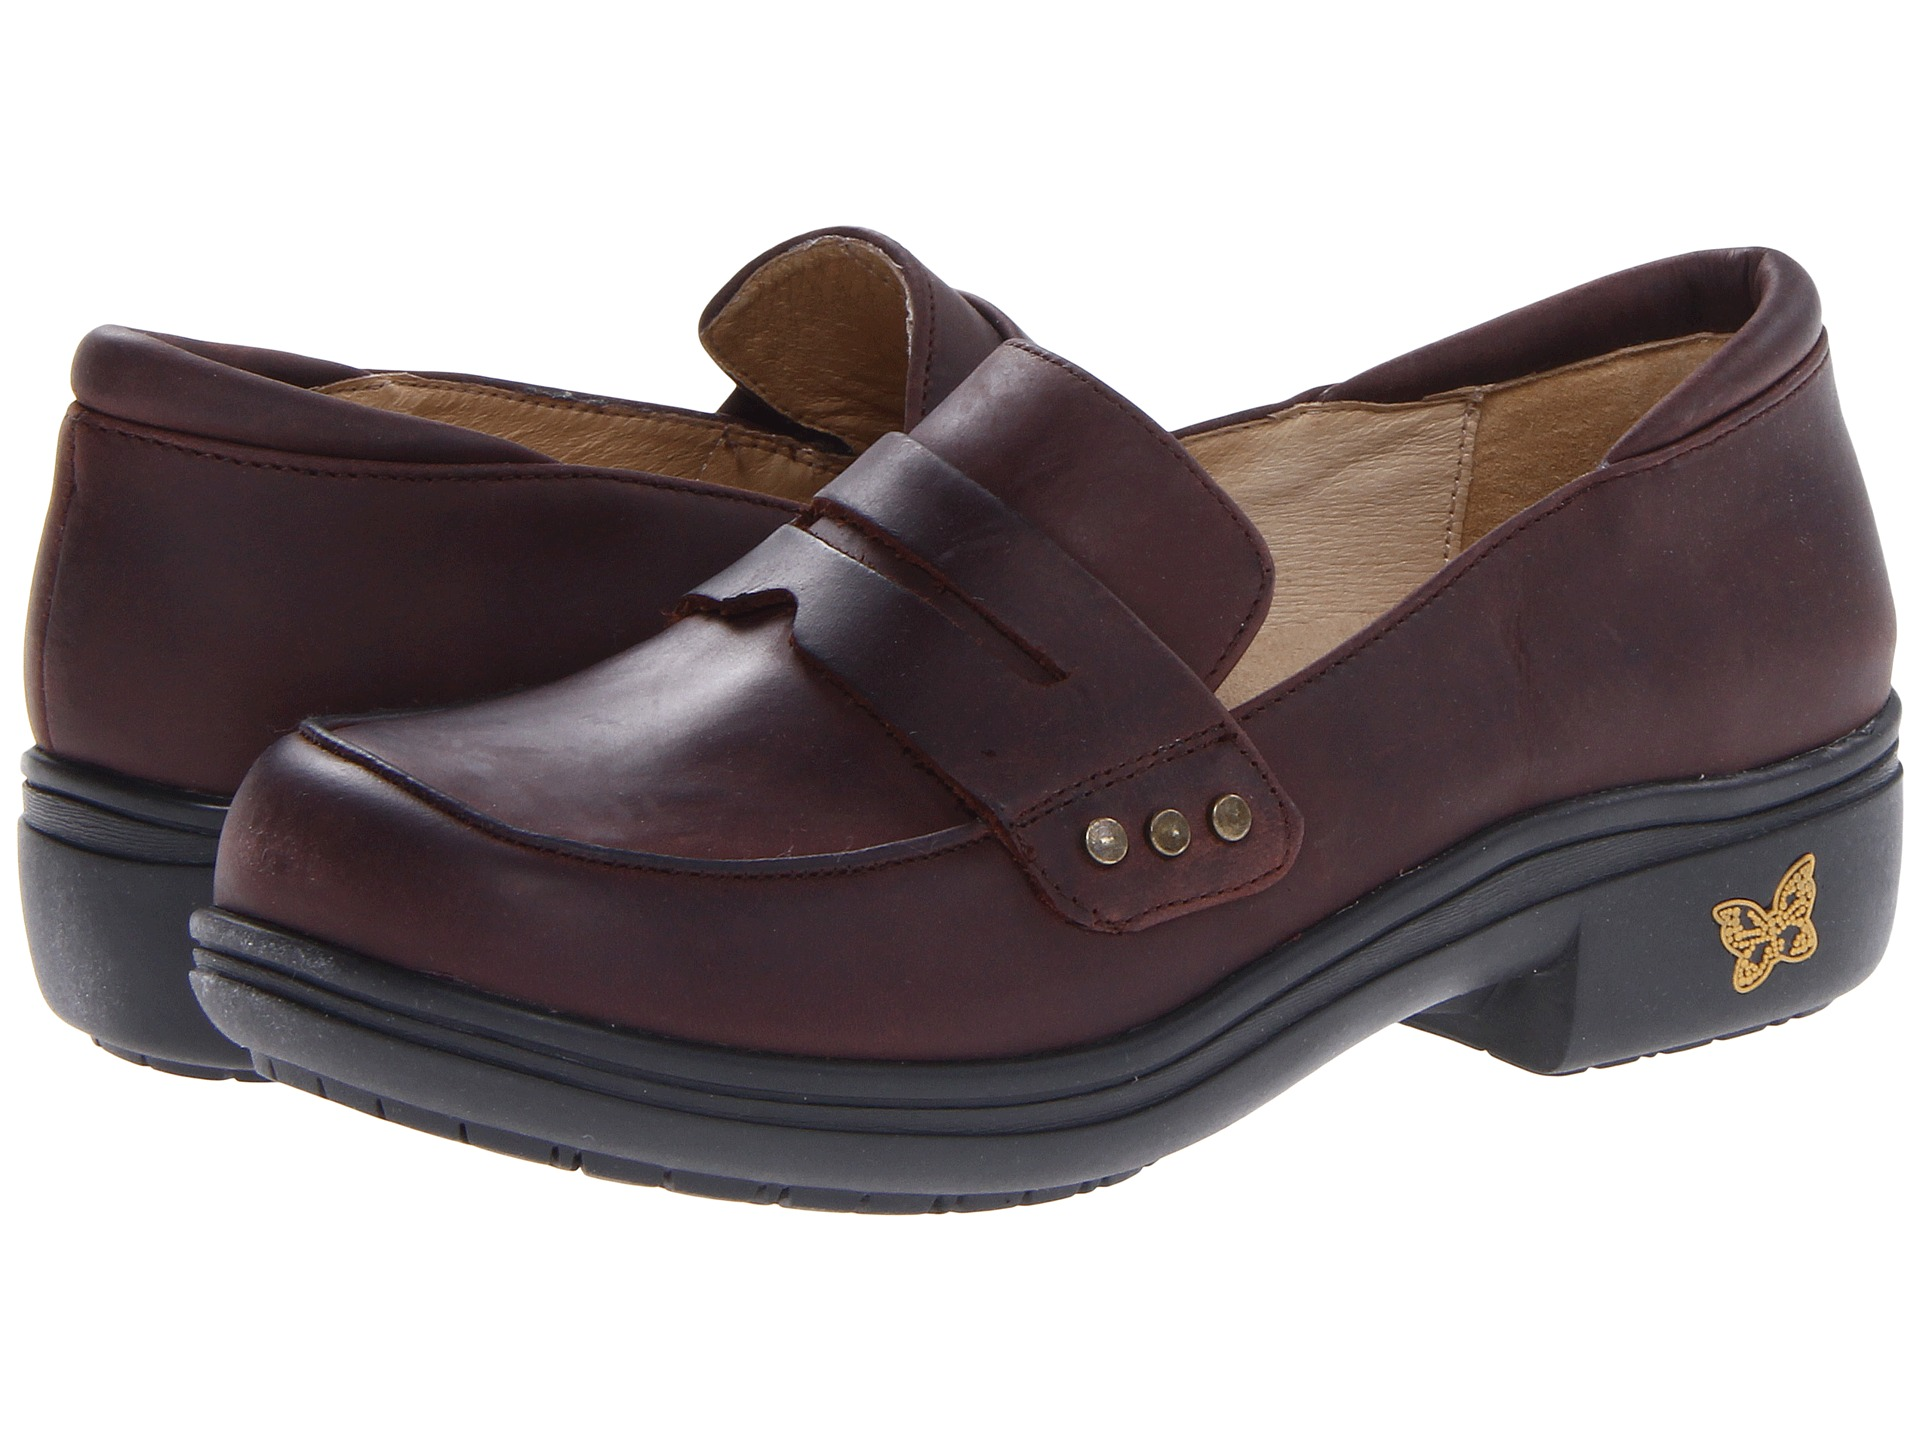 Shoes online free shipping both ways. Zappos Hush Puppy Shoes For Men On Sale ~ Hush Puppy Sandals. shoes jefferson - 28 images - shoes jefferson shoe, shoes. Aerosole Sandals: Sanuk Sandals Zappos. zappos shoes - 28 images - shoes jimmy winter zappos free. Johnston And Murphy Zappos ~ Mens Dress Sandals.